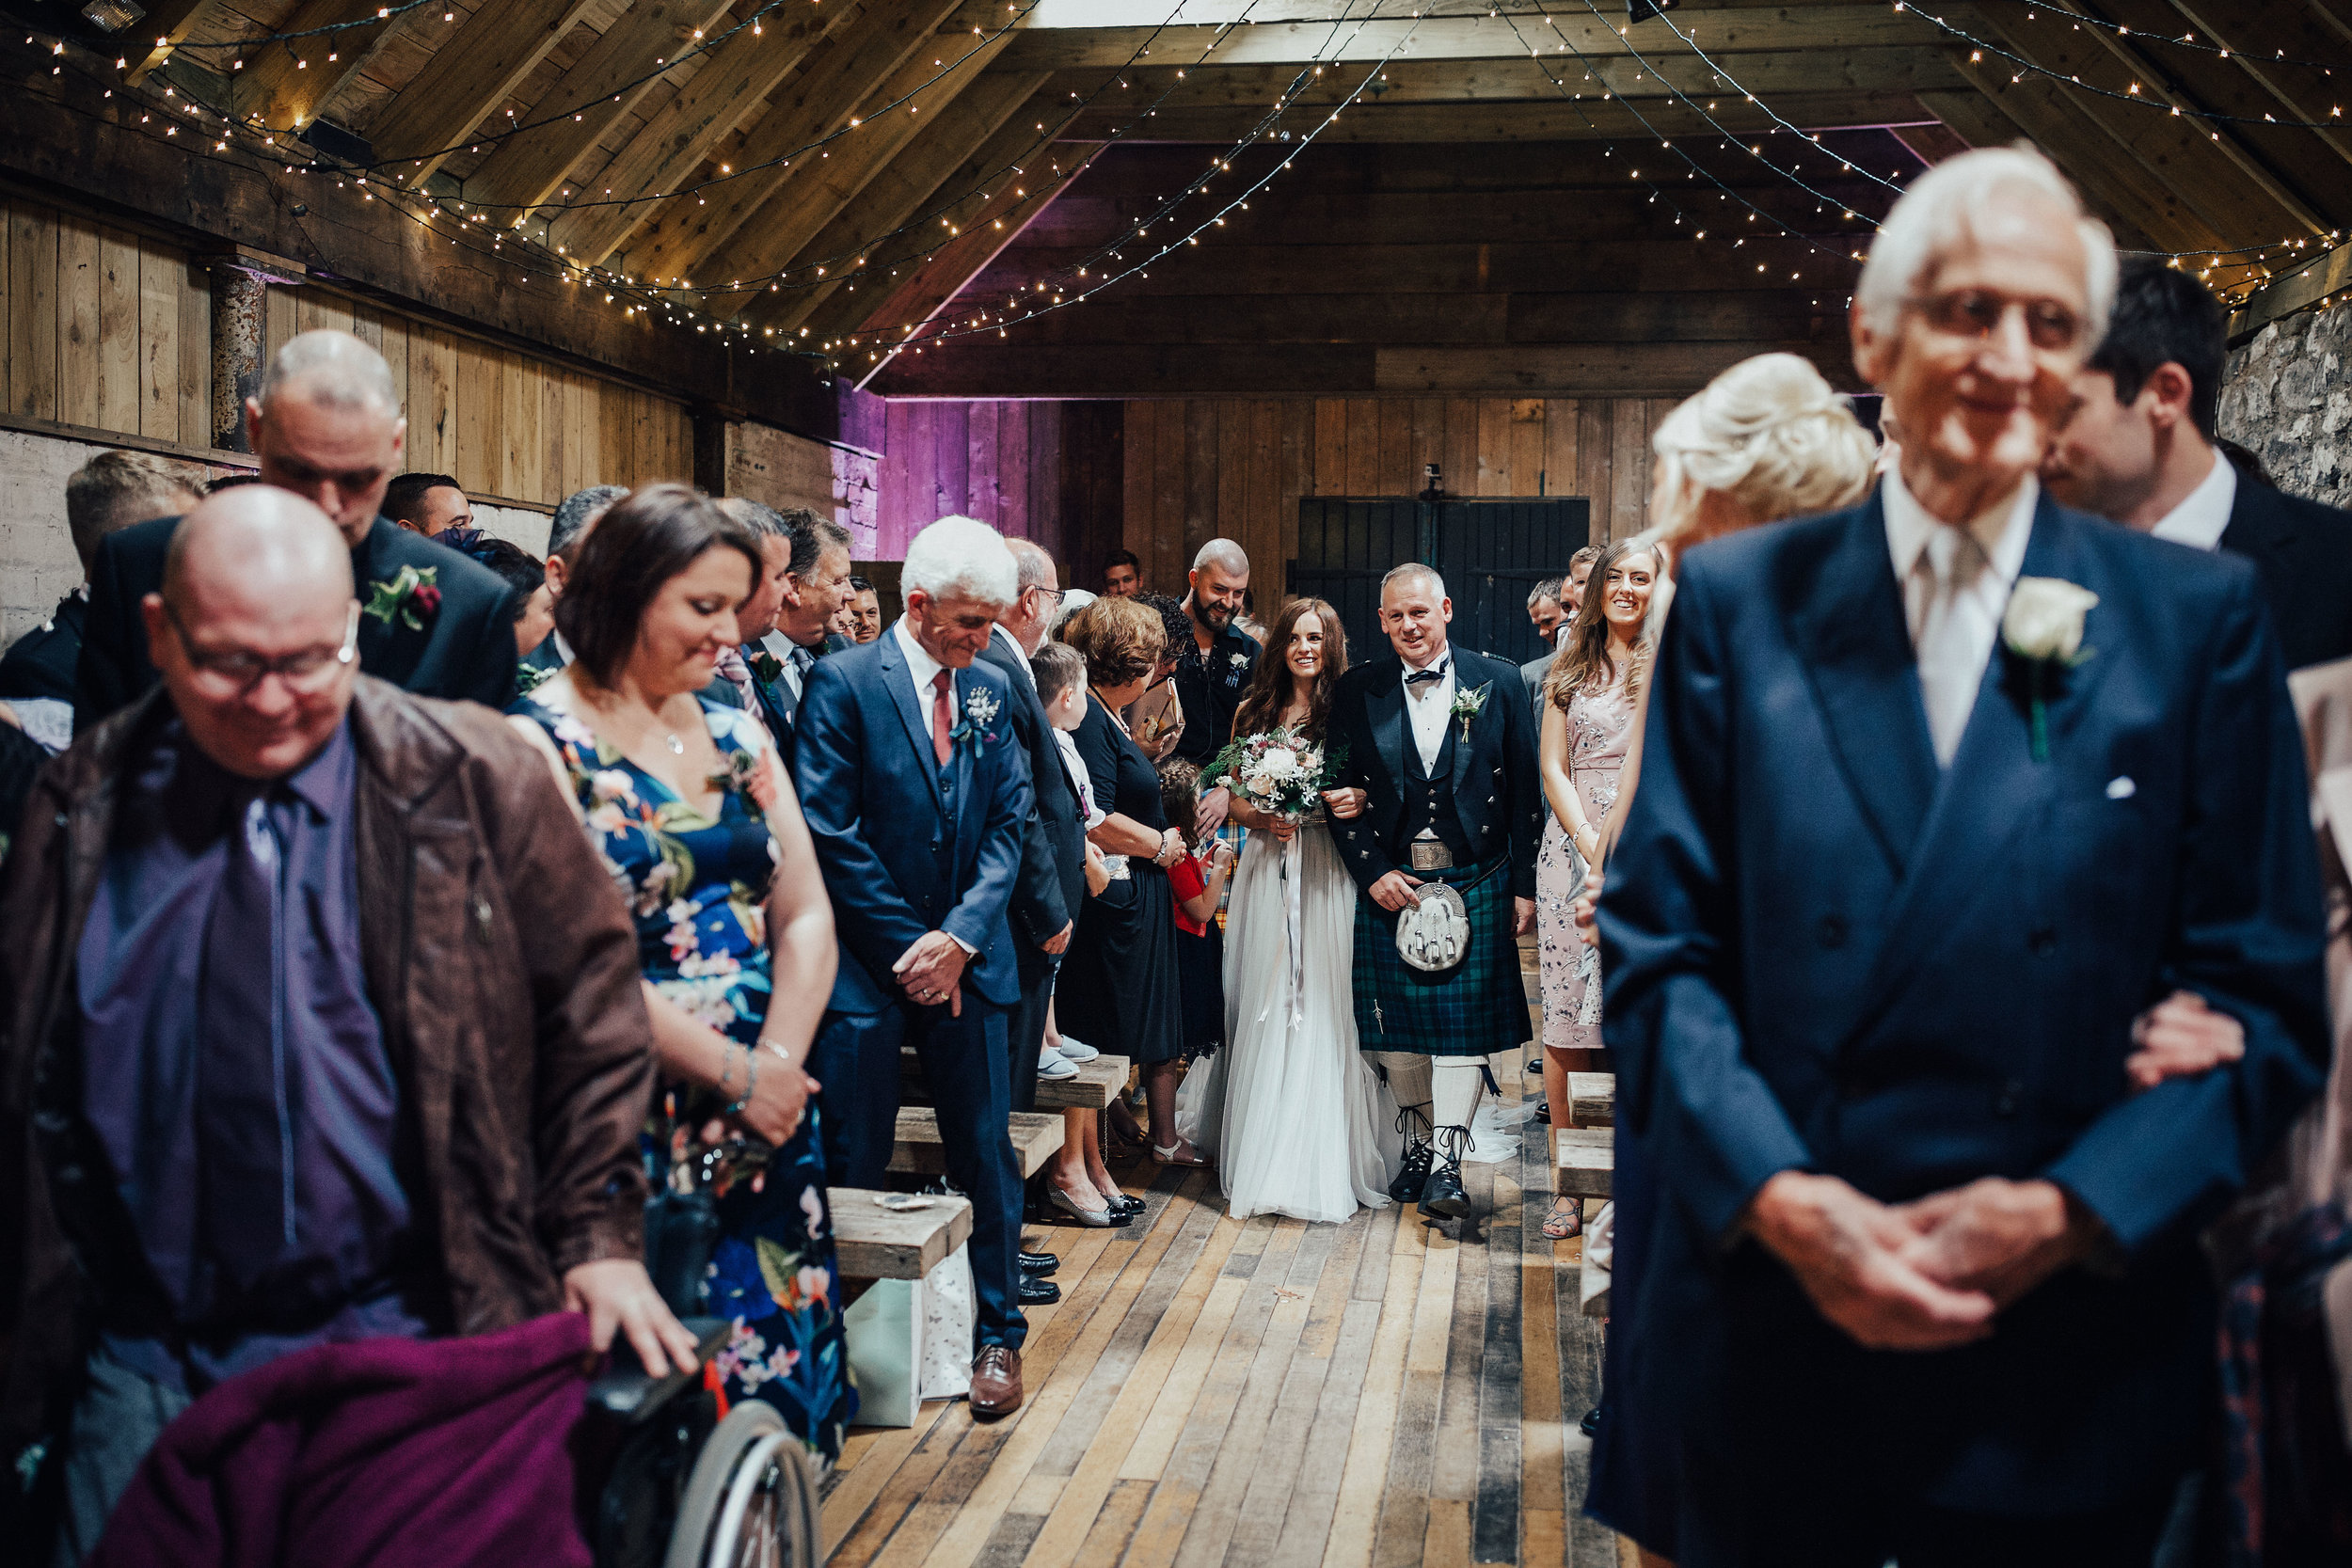 BYRE_AT_INCHYRA_WEDDING_PHOTOGRAPHER_PJ_PHILLIPS_PHOTOGRAPHY_KAYLEIGH_ANDREW_76.jpg